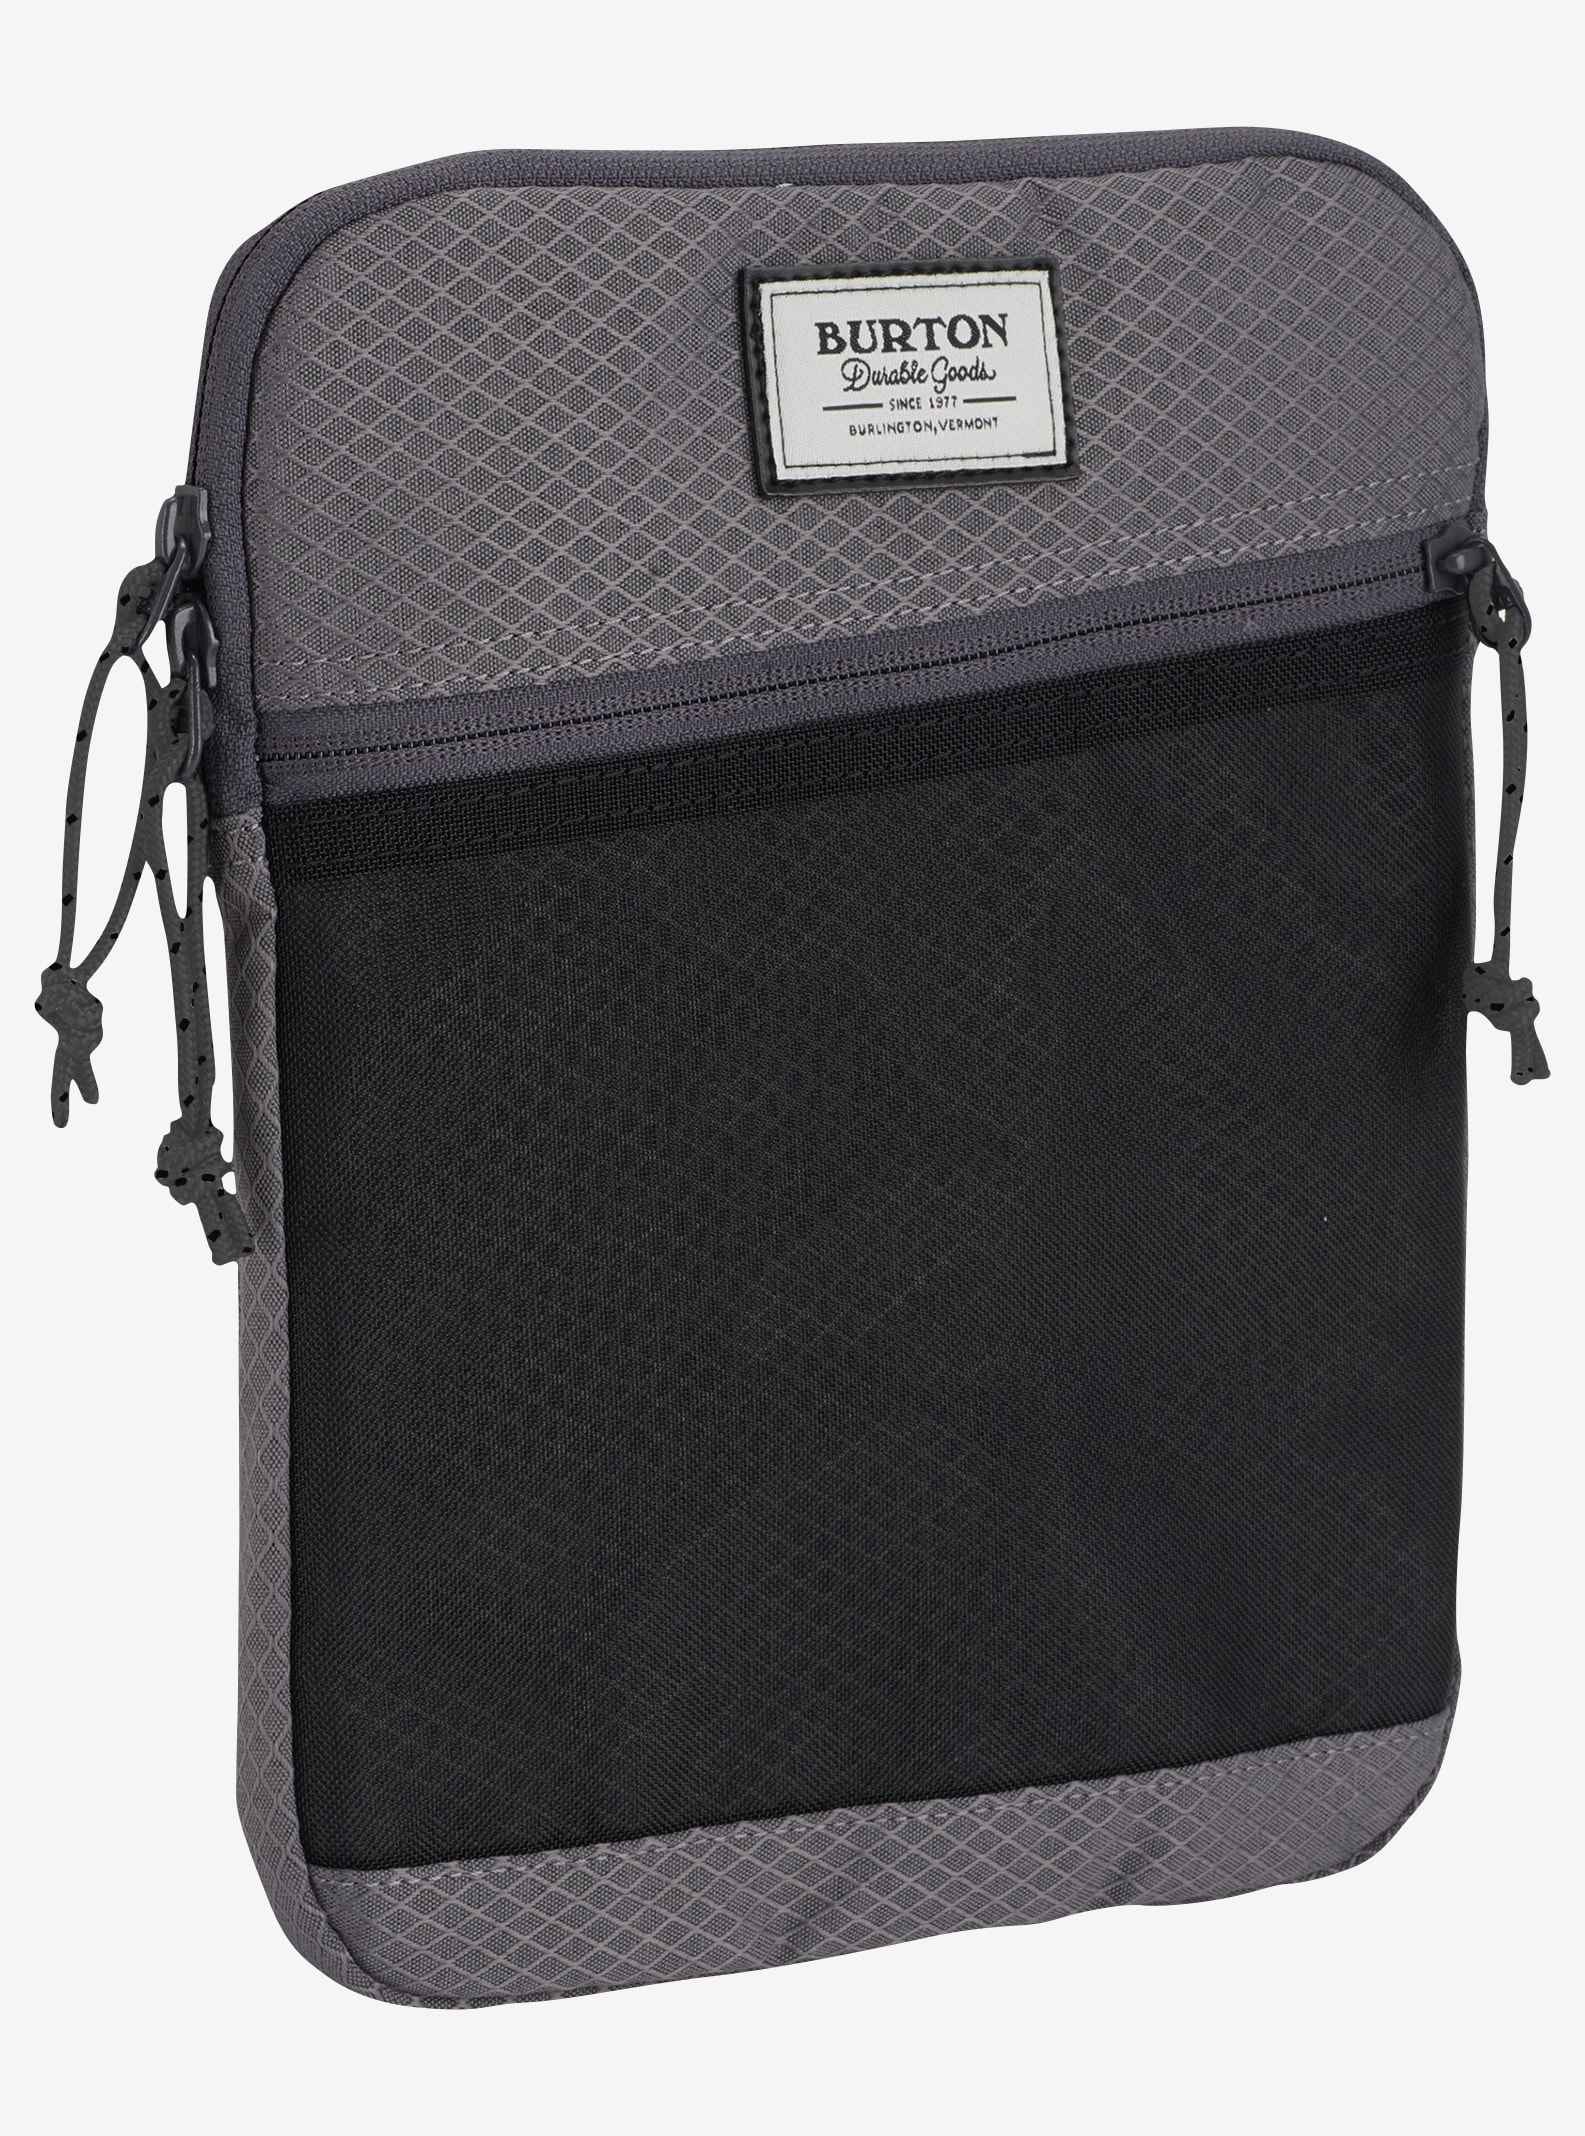 Burton Hyperlink 10in Tablet Sleeve shown in Faded Diamond Ripstop